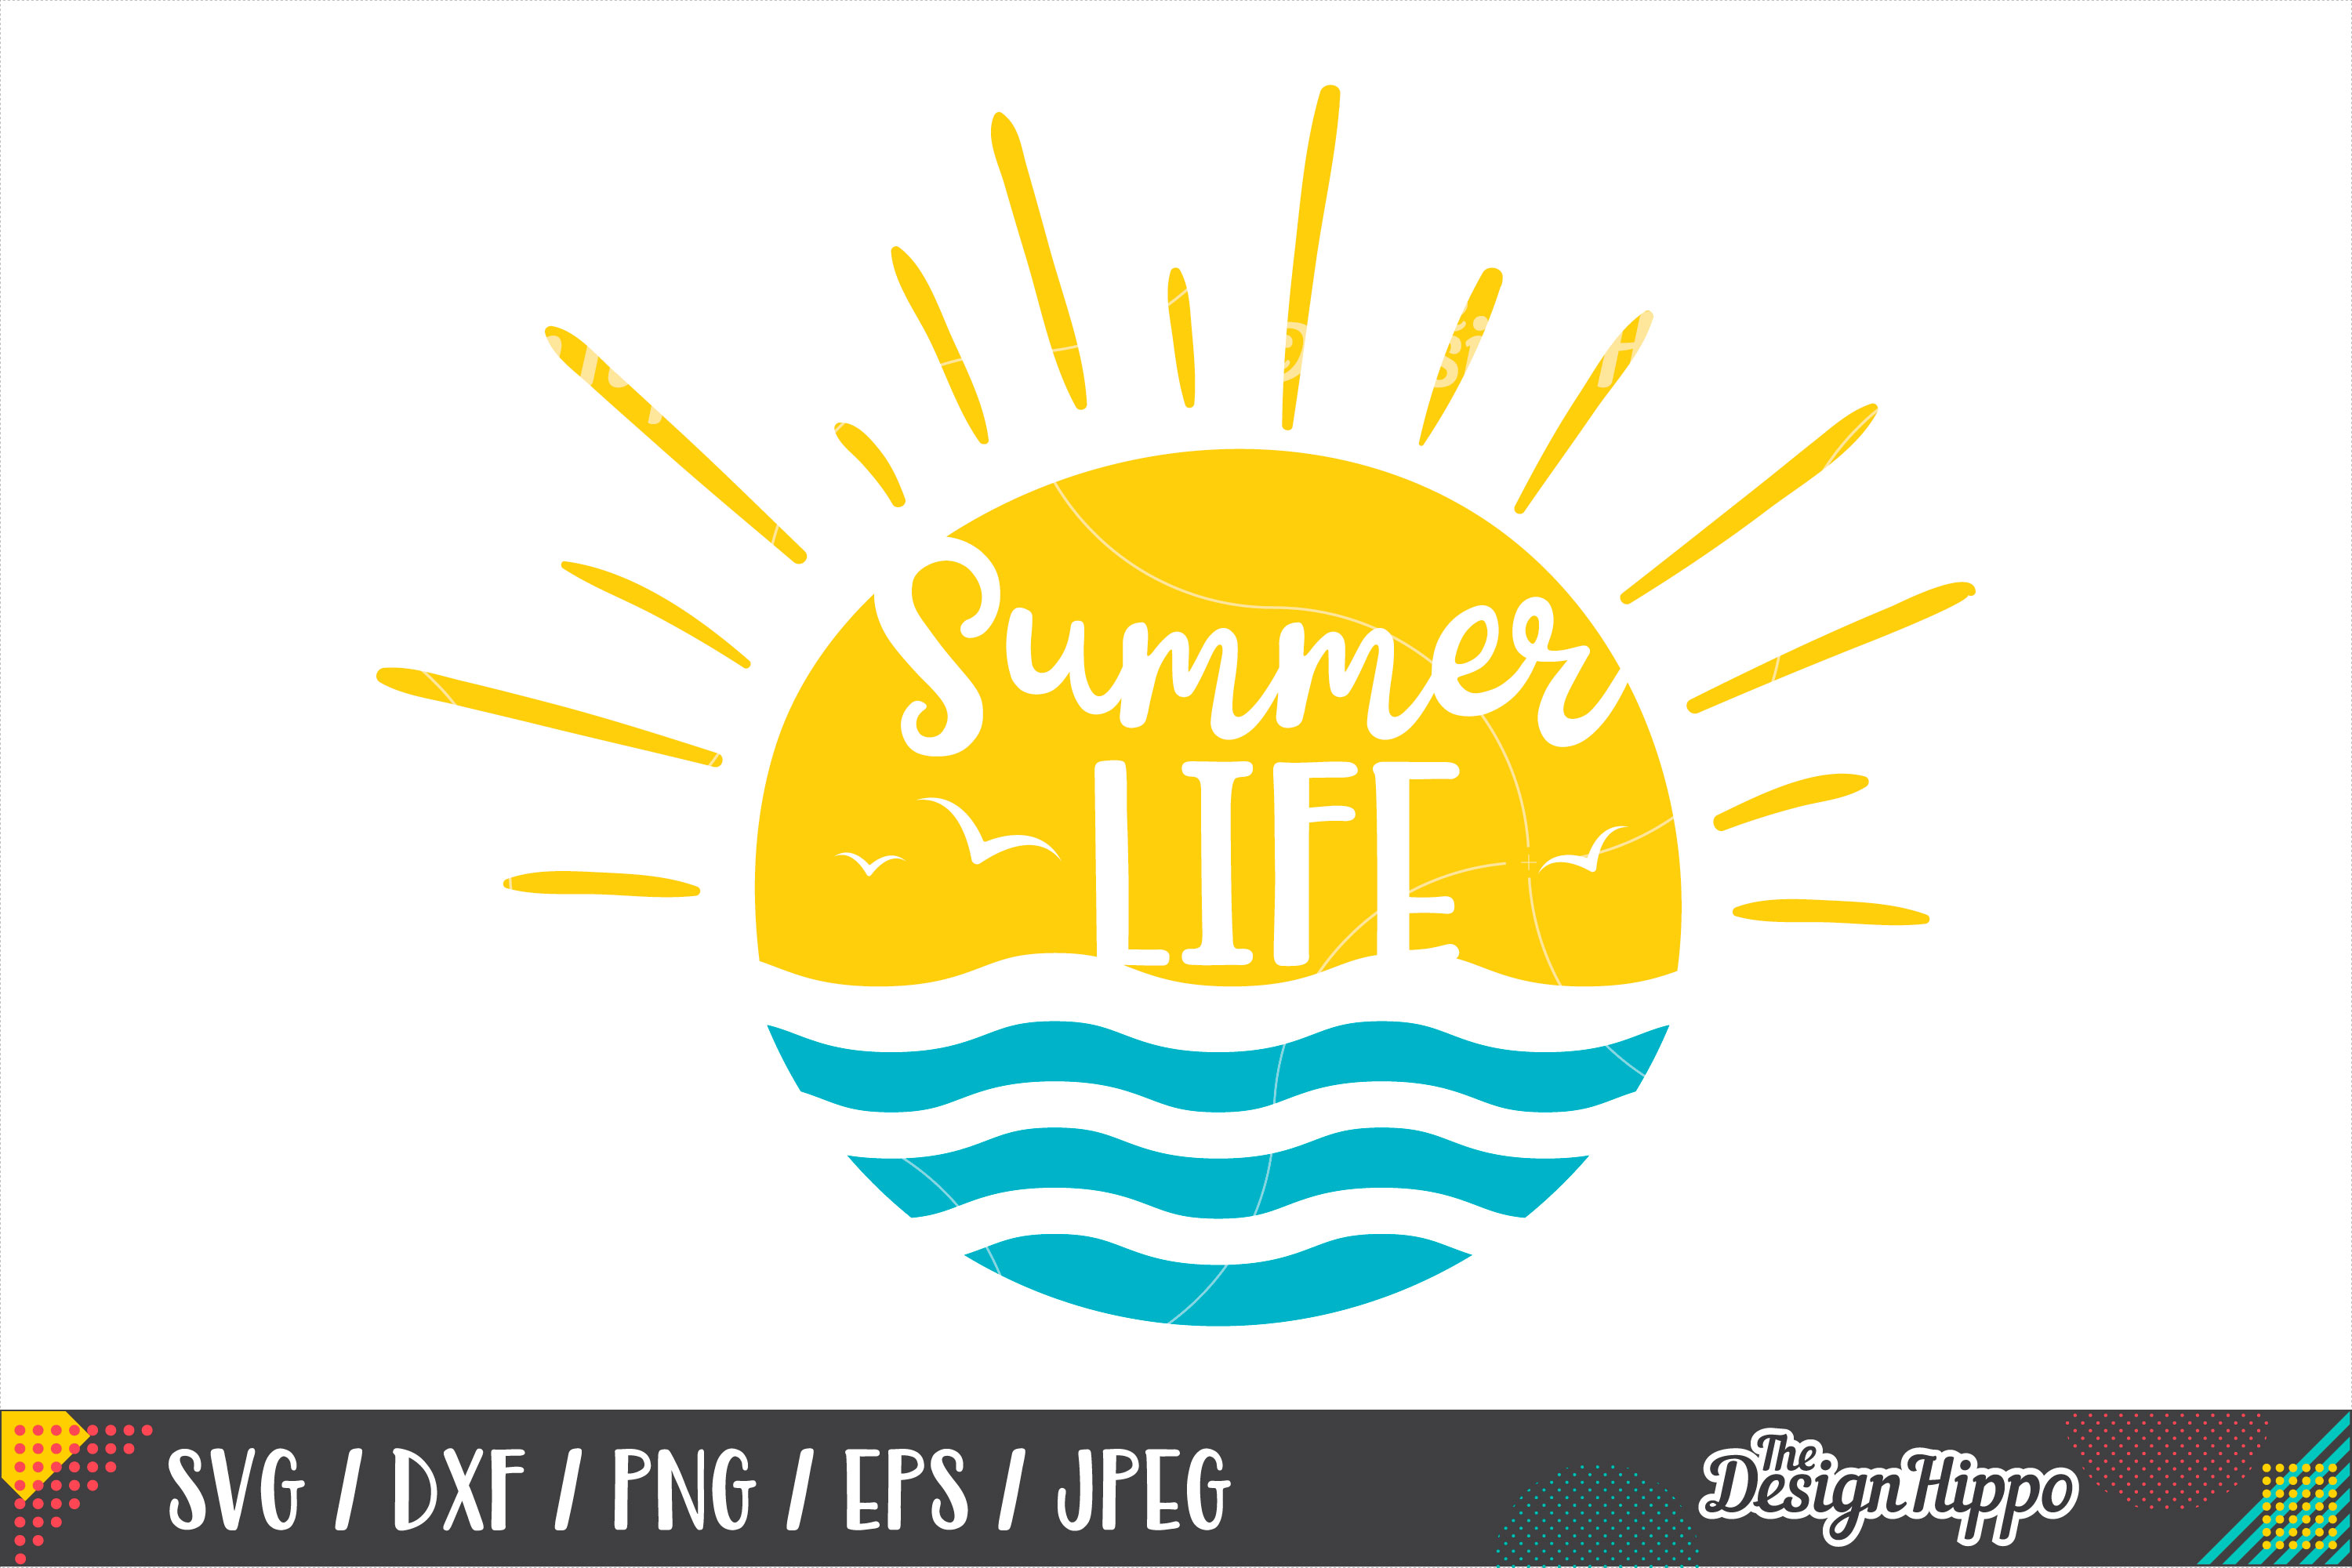 Summer Life SVG, Beach, Waves, Sunshine, SVG DXF PNG Files example image 1